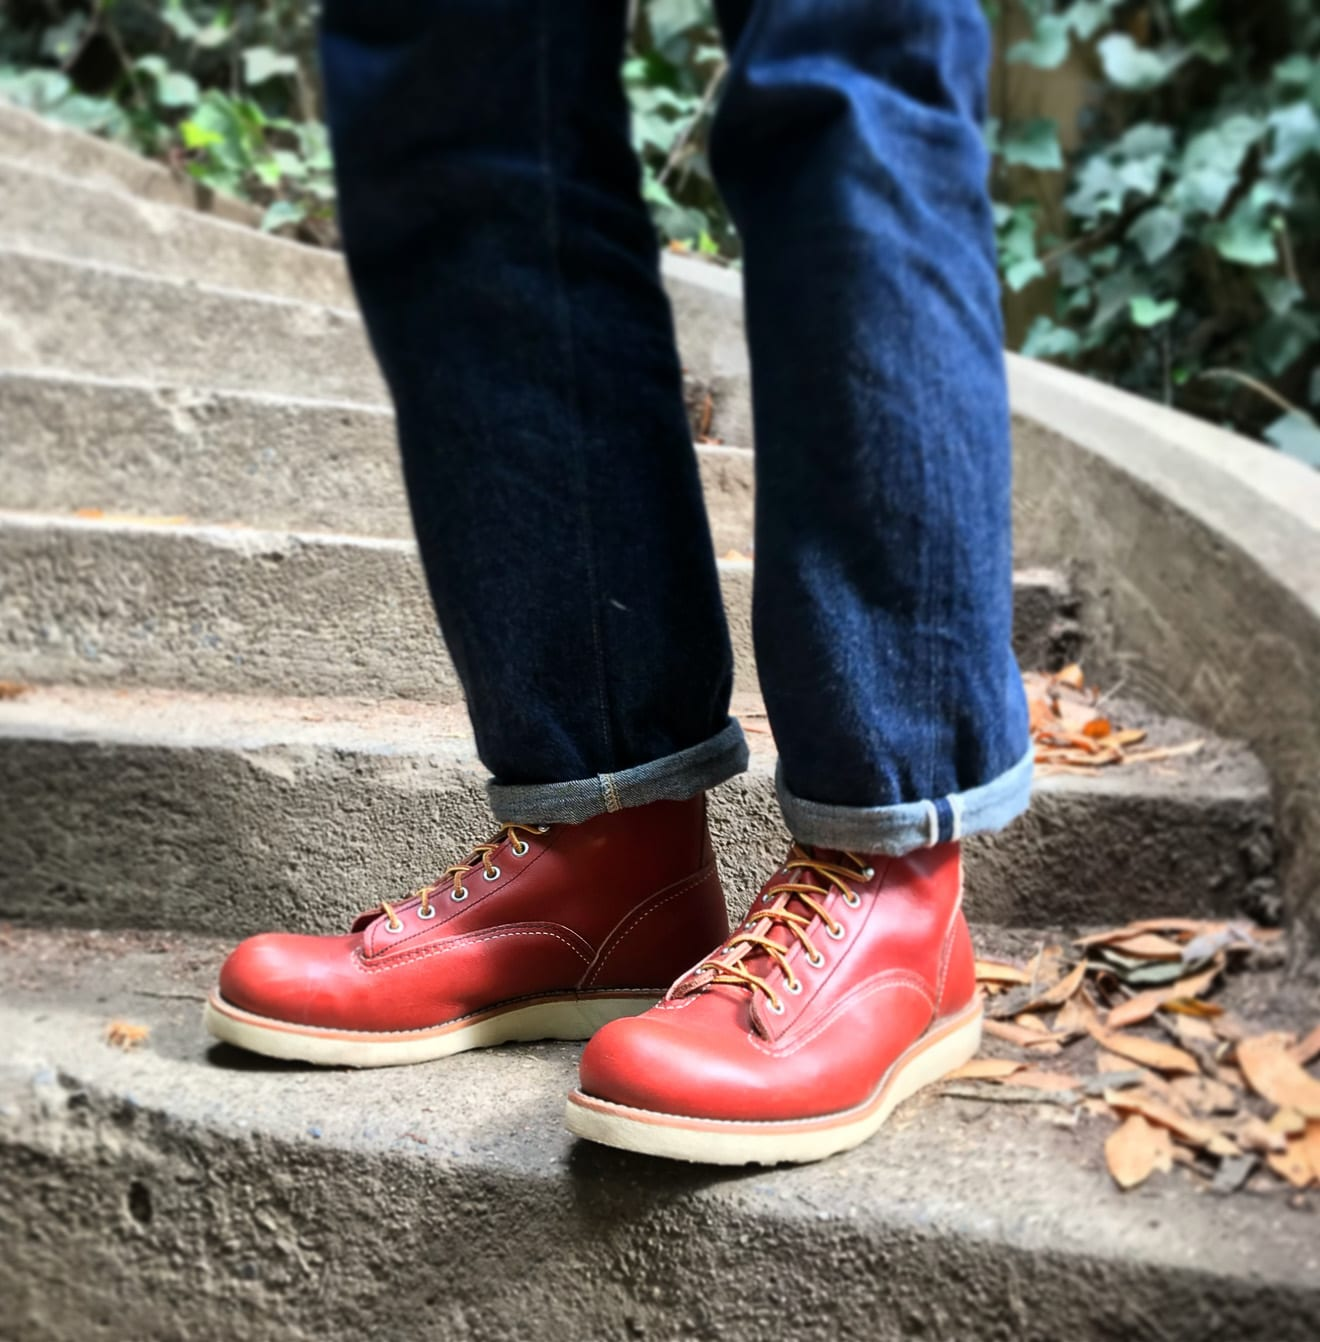 Blue Blooded, Instagrammer, sanforizedson, Denimhunters, raw denim, Bay Area, selvedge denim, Red Wing boots, Red Wing, Red Wings, Lineman